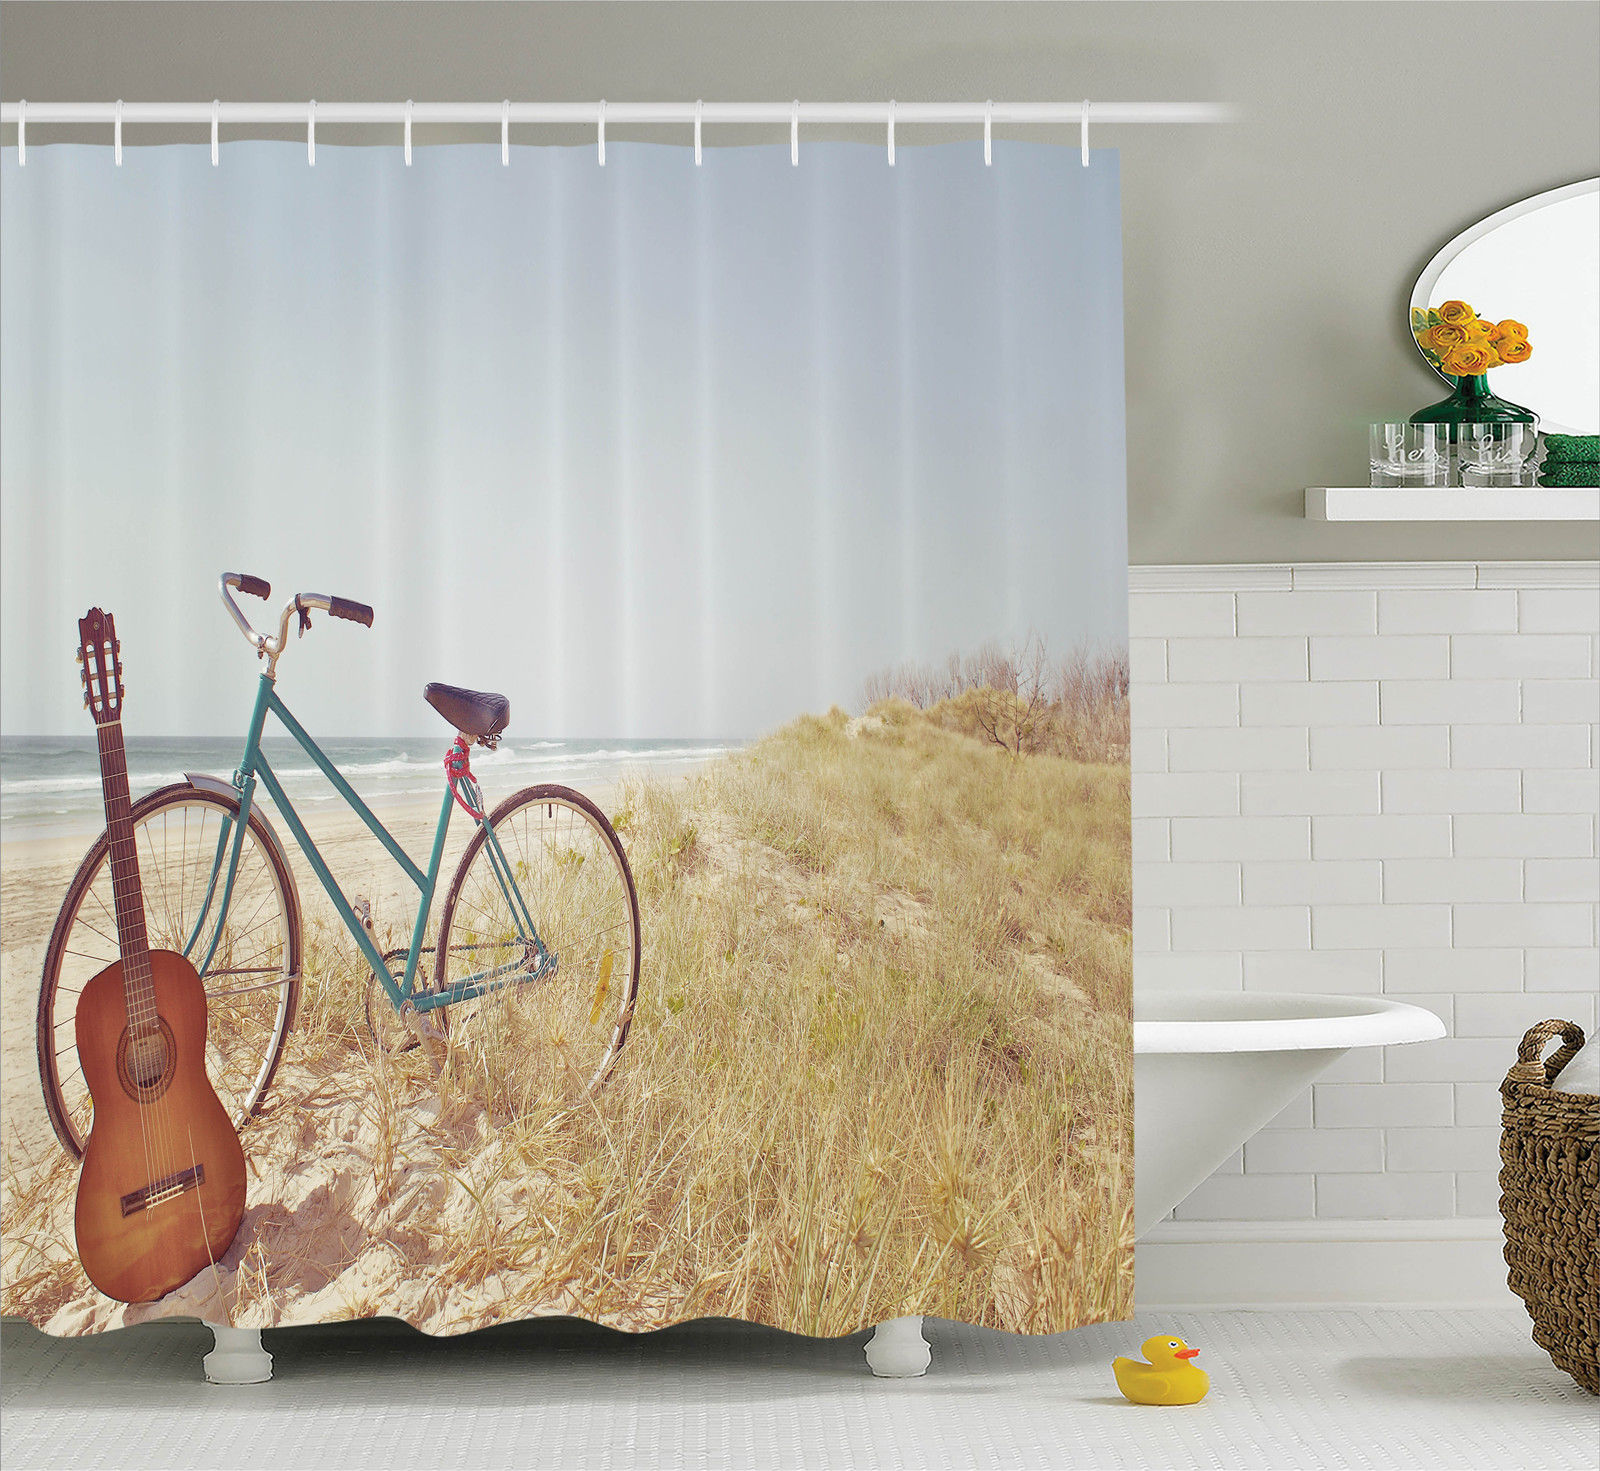 Vintage Bike and Old Guitar on Beach Image Retro Style Decor Shower Curtain Set